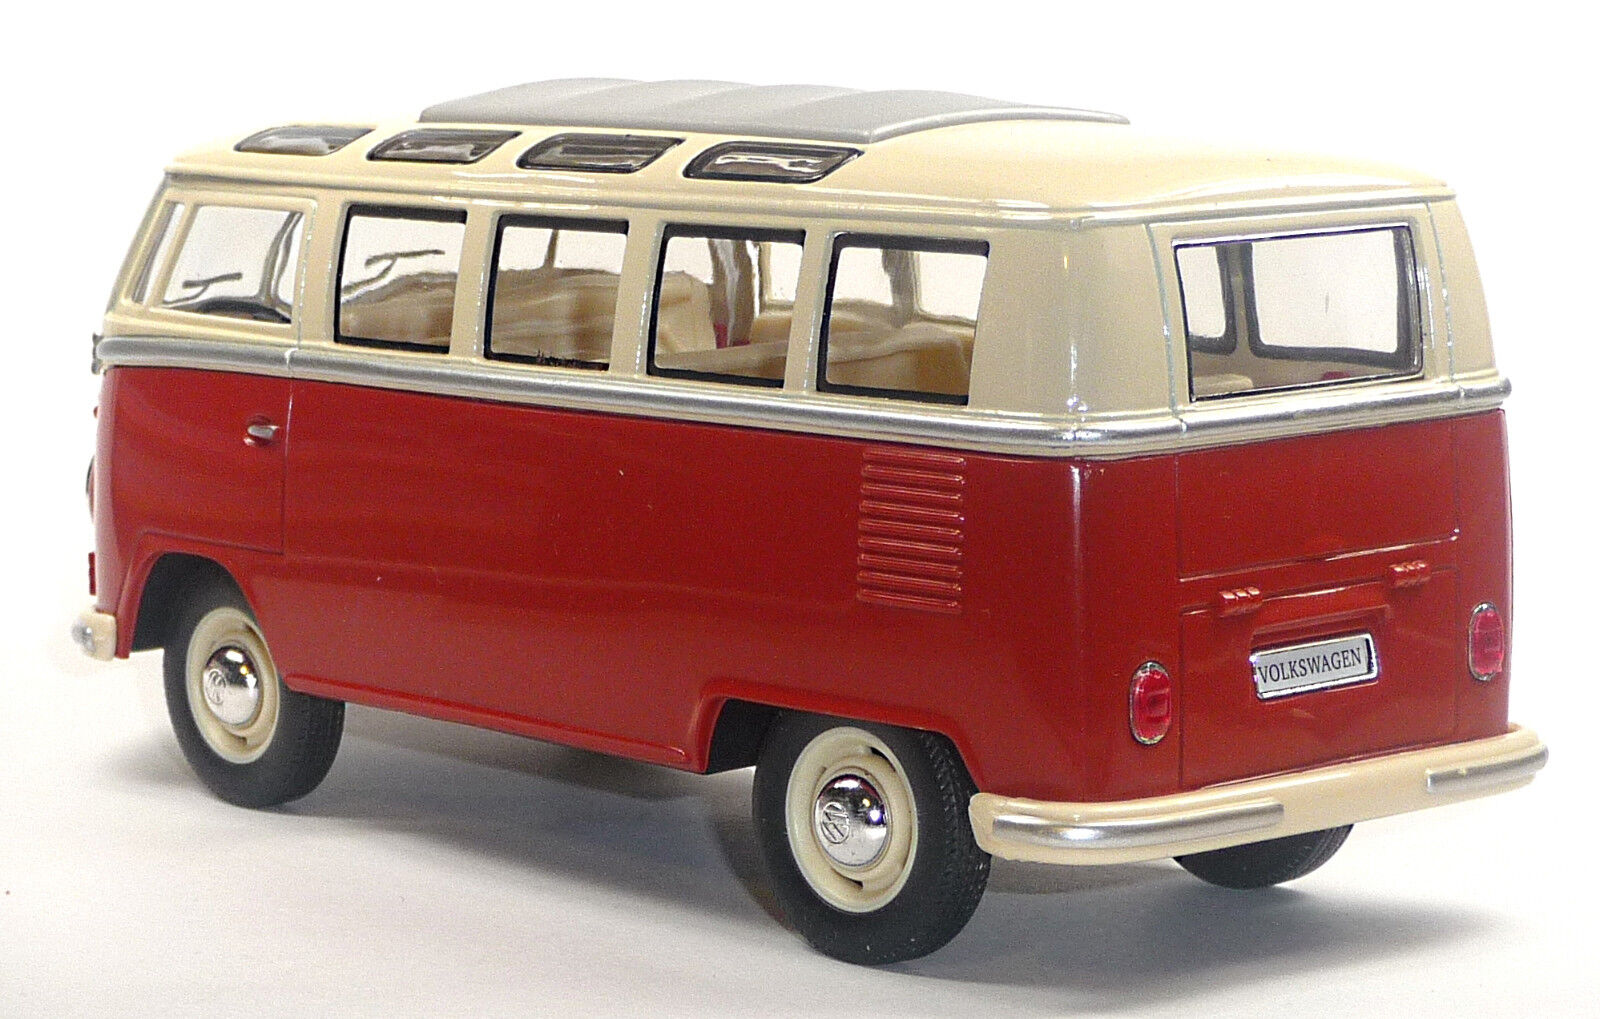 neu vw bus bulli t1 samba 1 24 rot modellauto ca 17. Black Bedroom Furniture Sets. Home Design Ideas